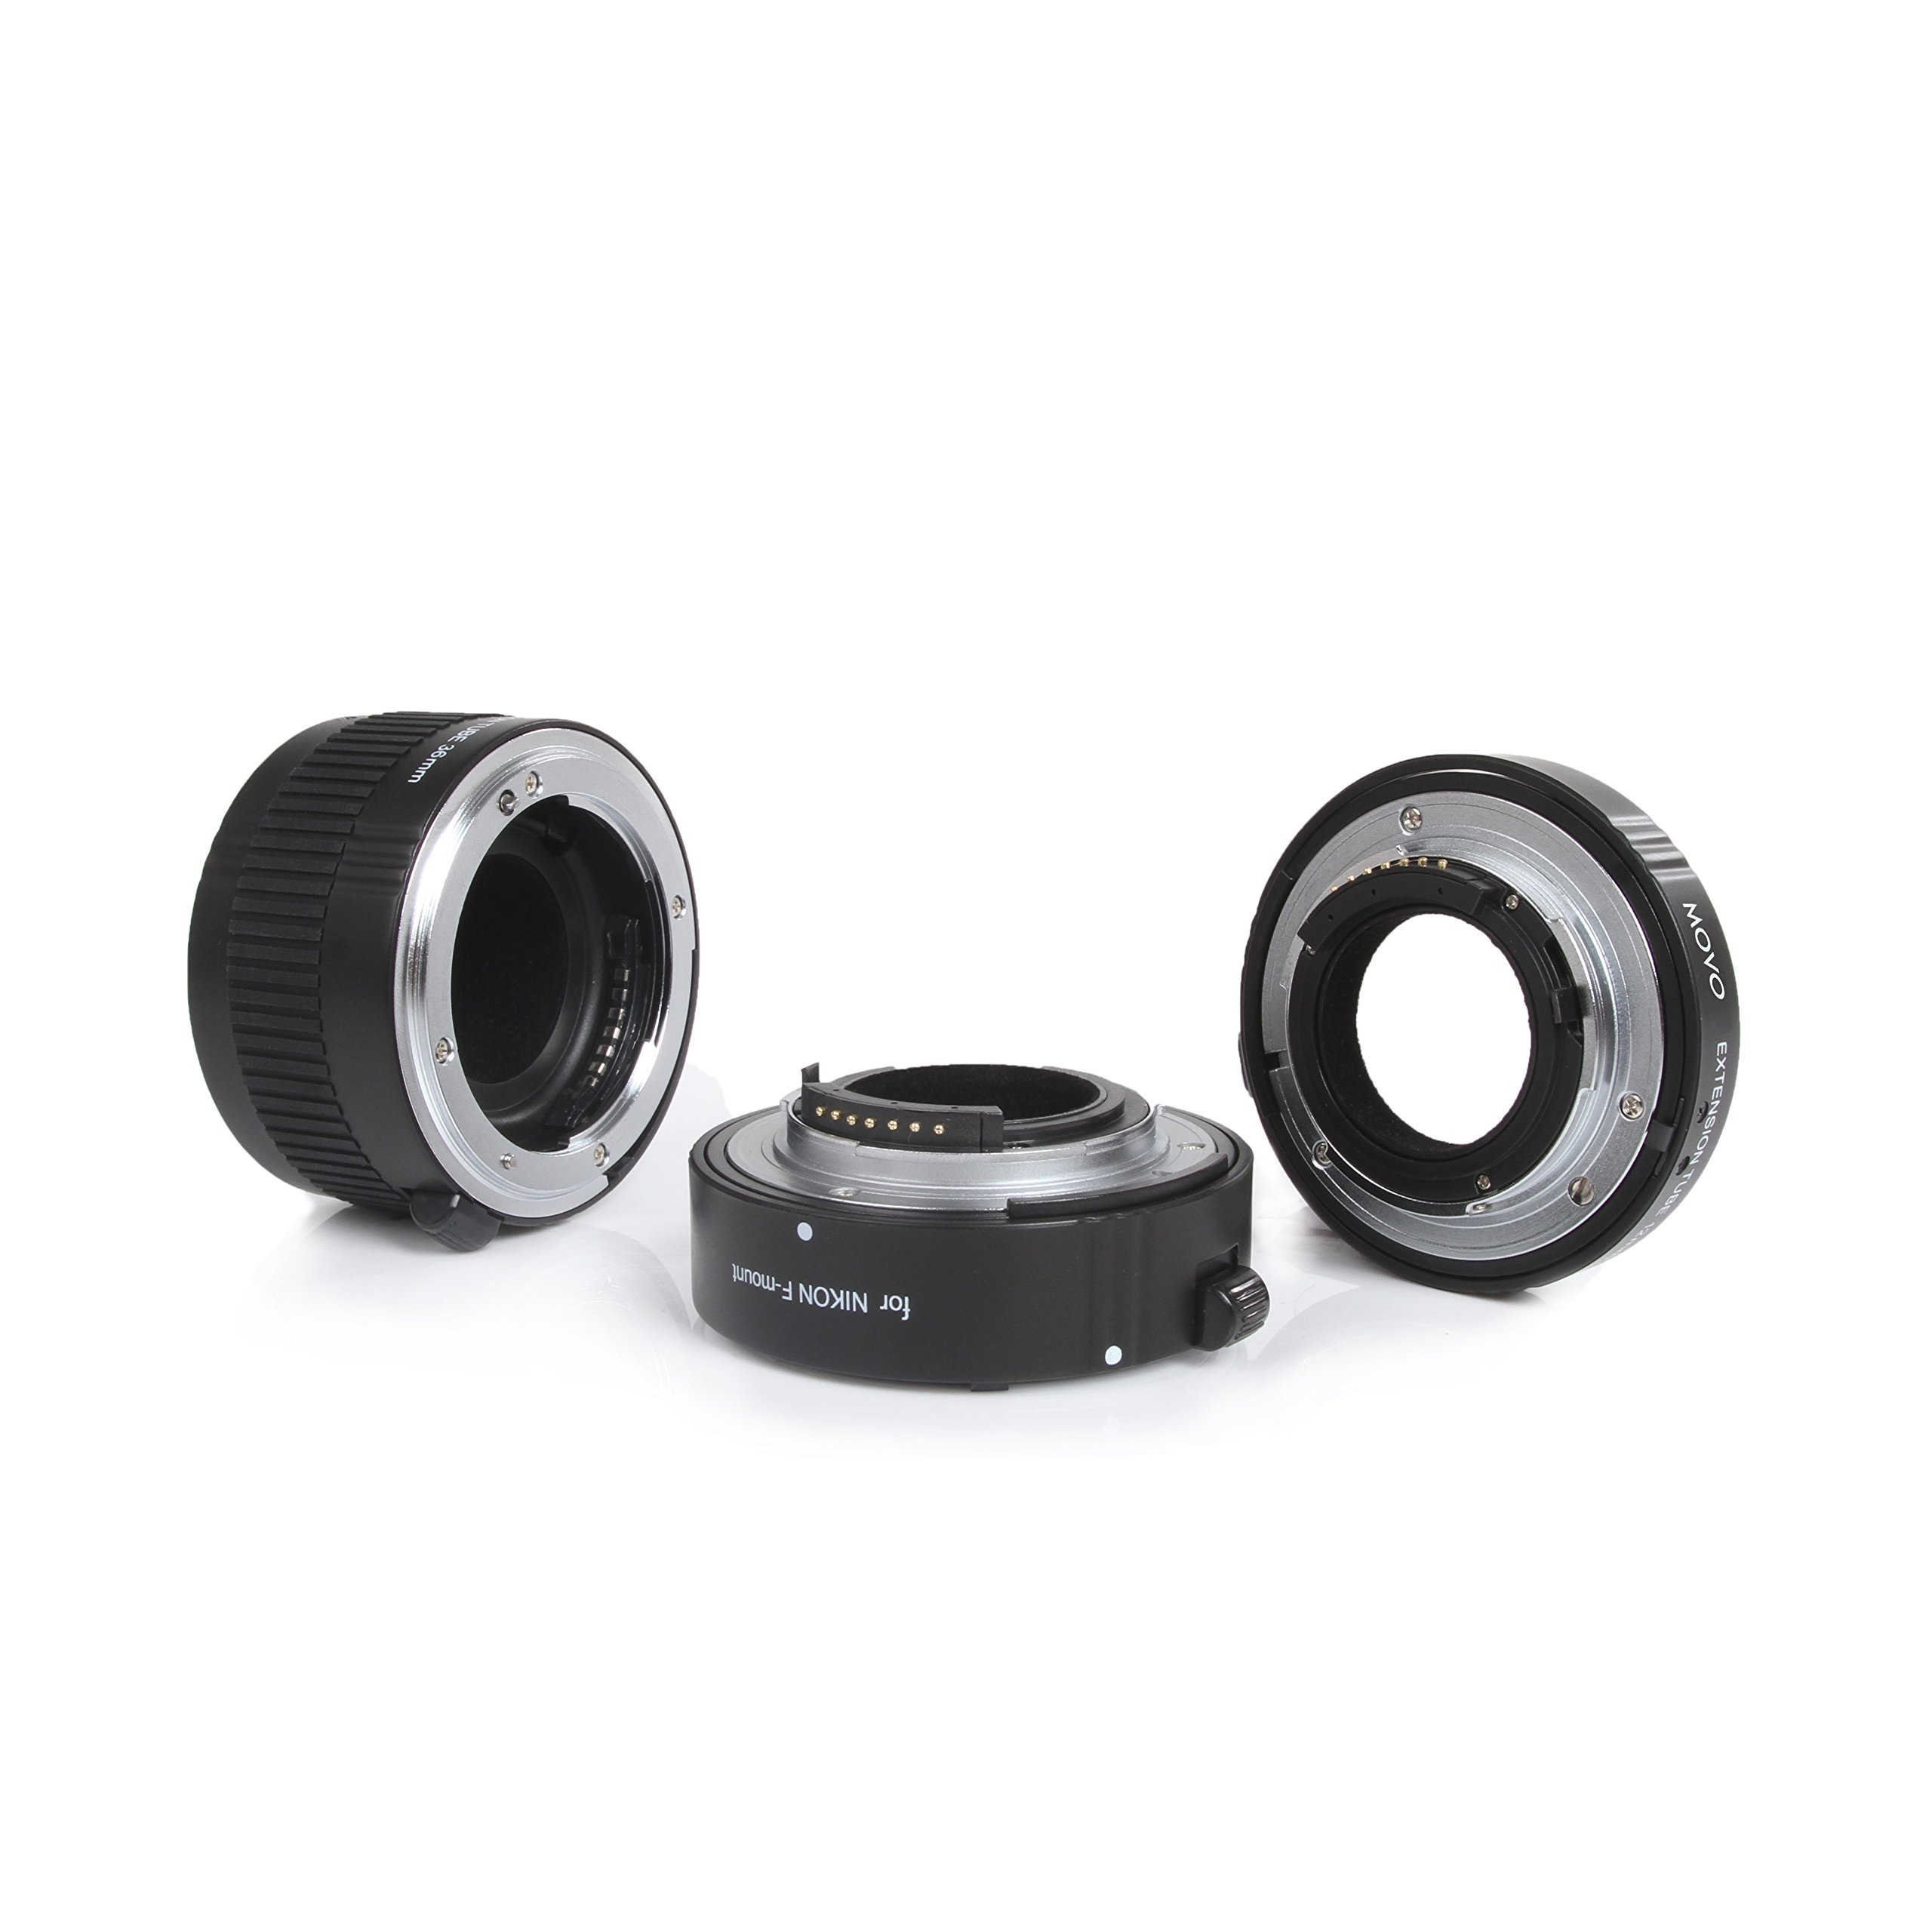 Movo Photo AF Macro Extension Tube Set for Nikon DSLR Camera with 12mm, 20mm & 36mm Tubes (Metal Mount) by Movo (Image #2)